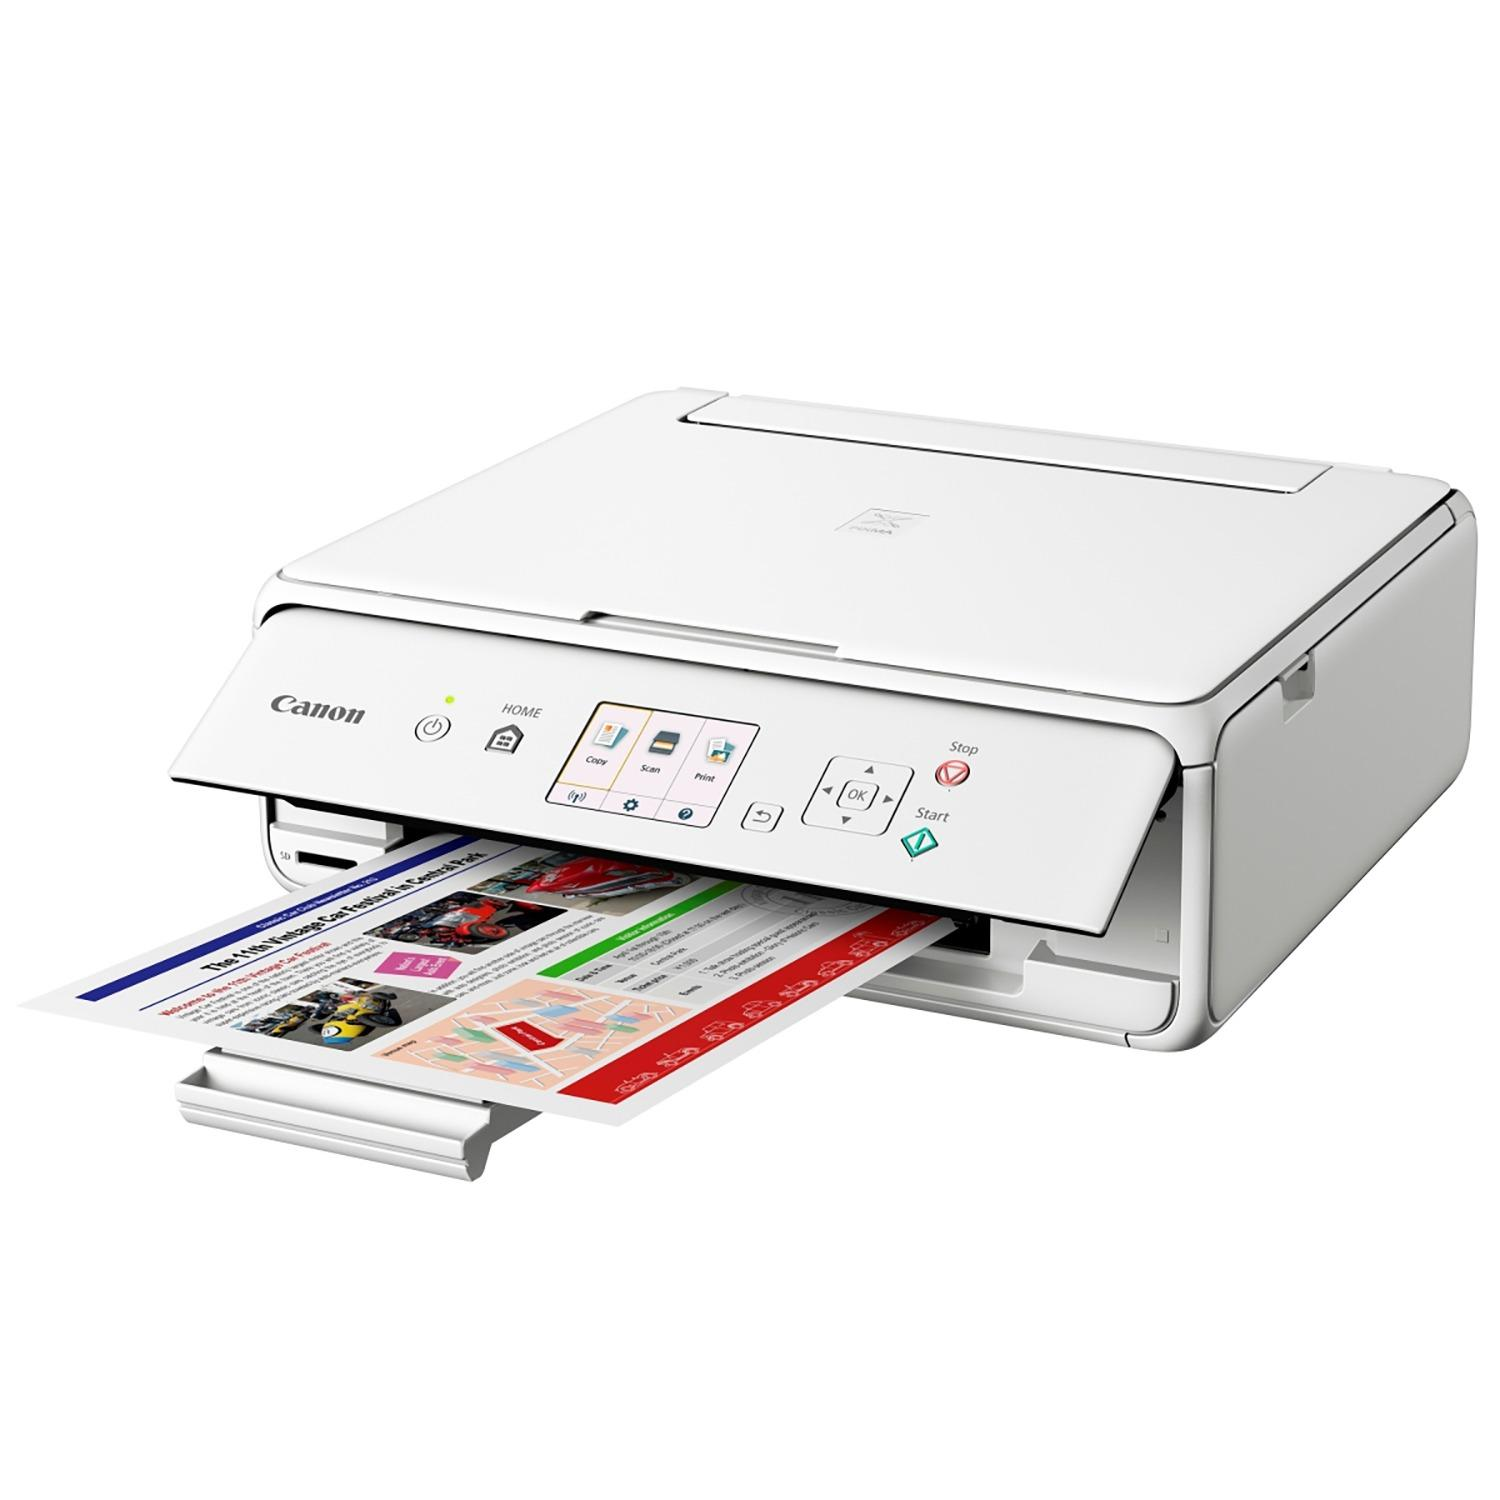 Buy Canon Jet Multi Function Printer Lazada G3000 All In One Wi Fi